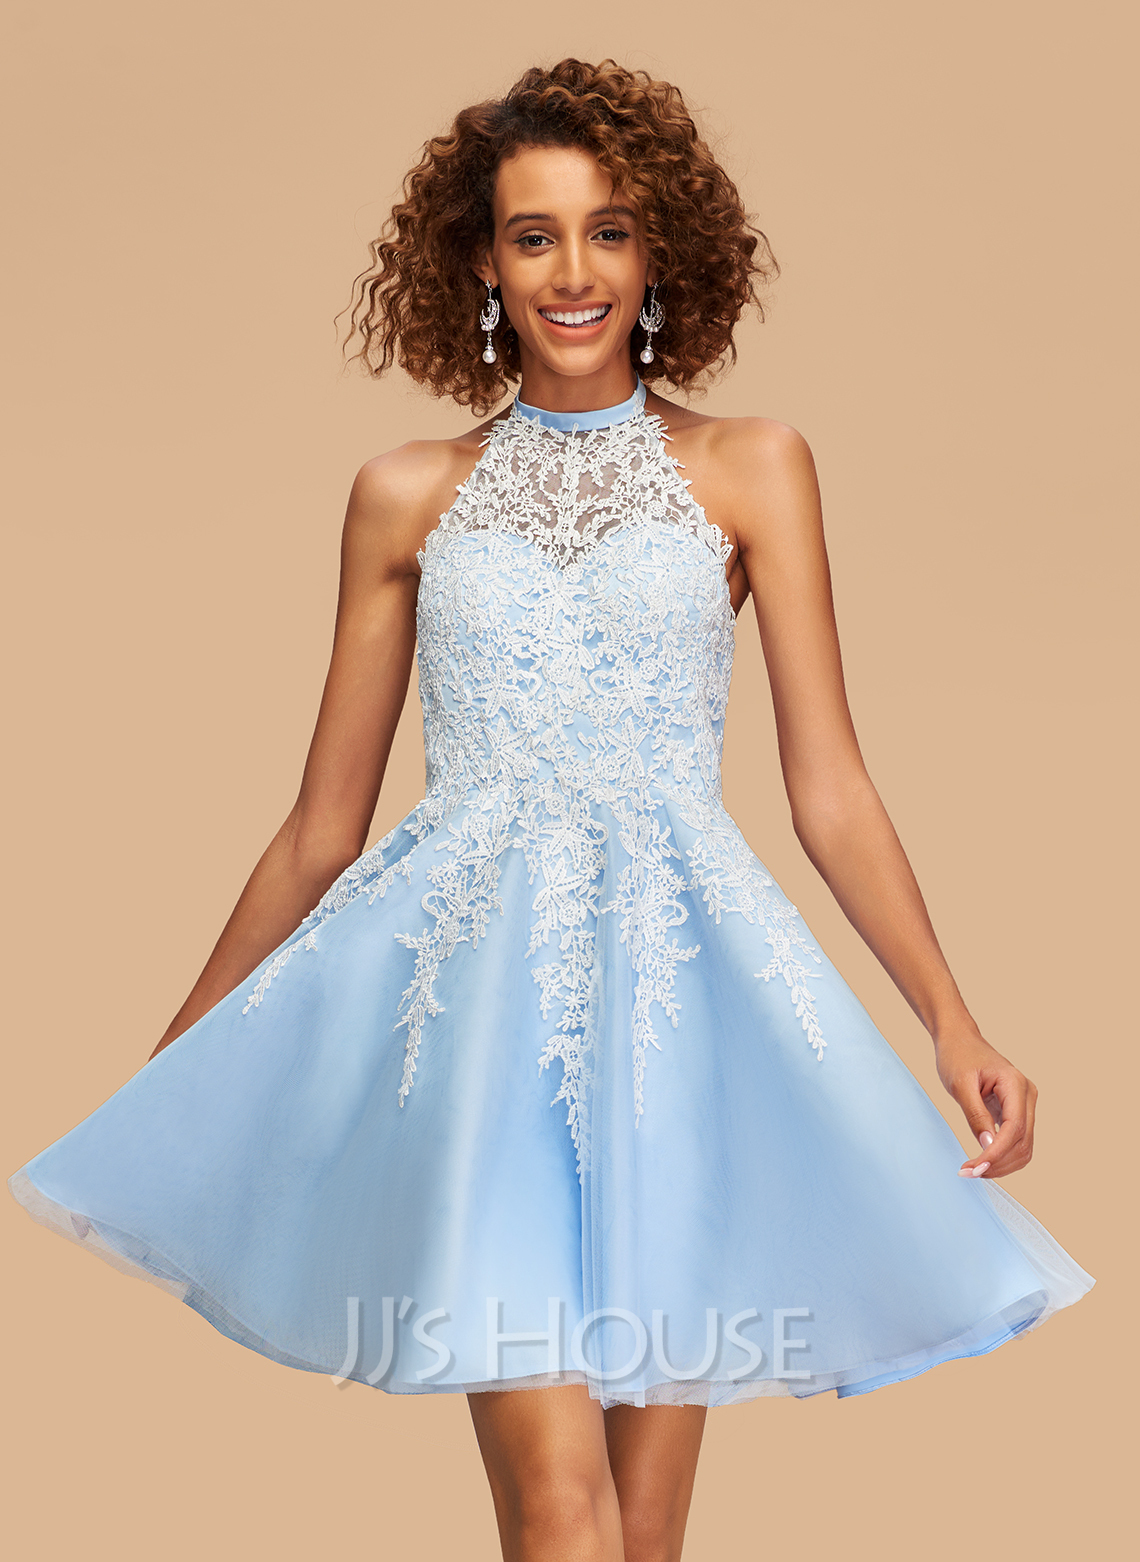 A-Line Halter Short/Mini Tulle Homecoming Dress With Lace